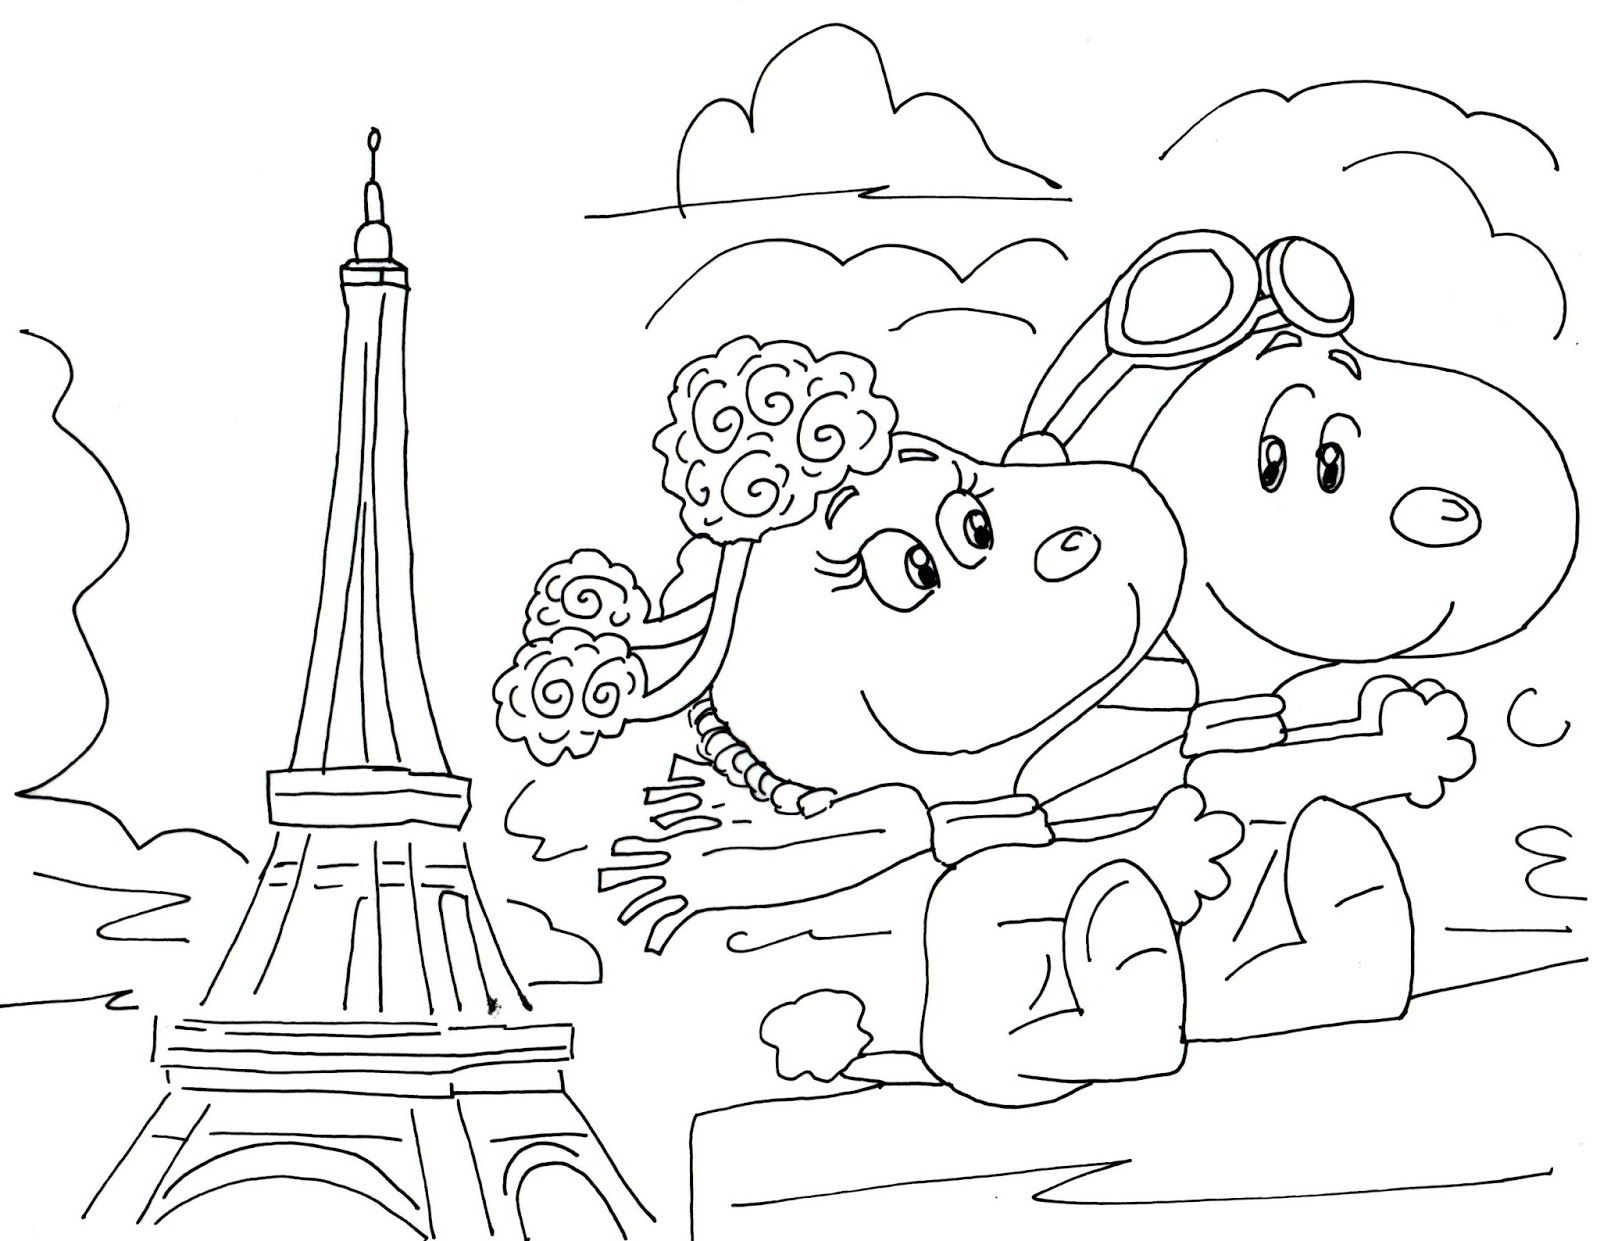 Free Charlie Brown Snoopy and Peanuts Coloring Pages: Fifi